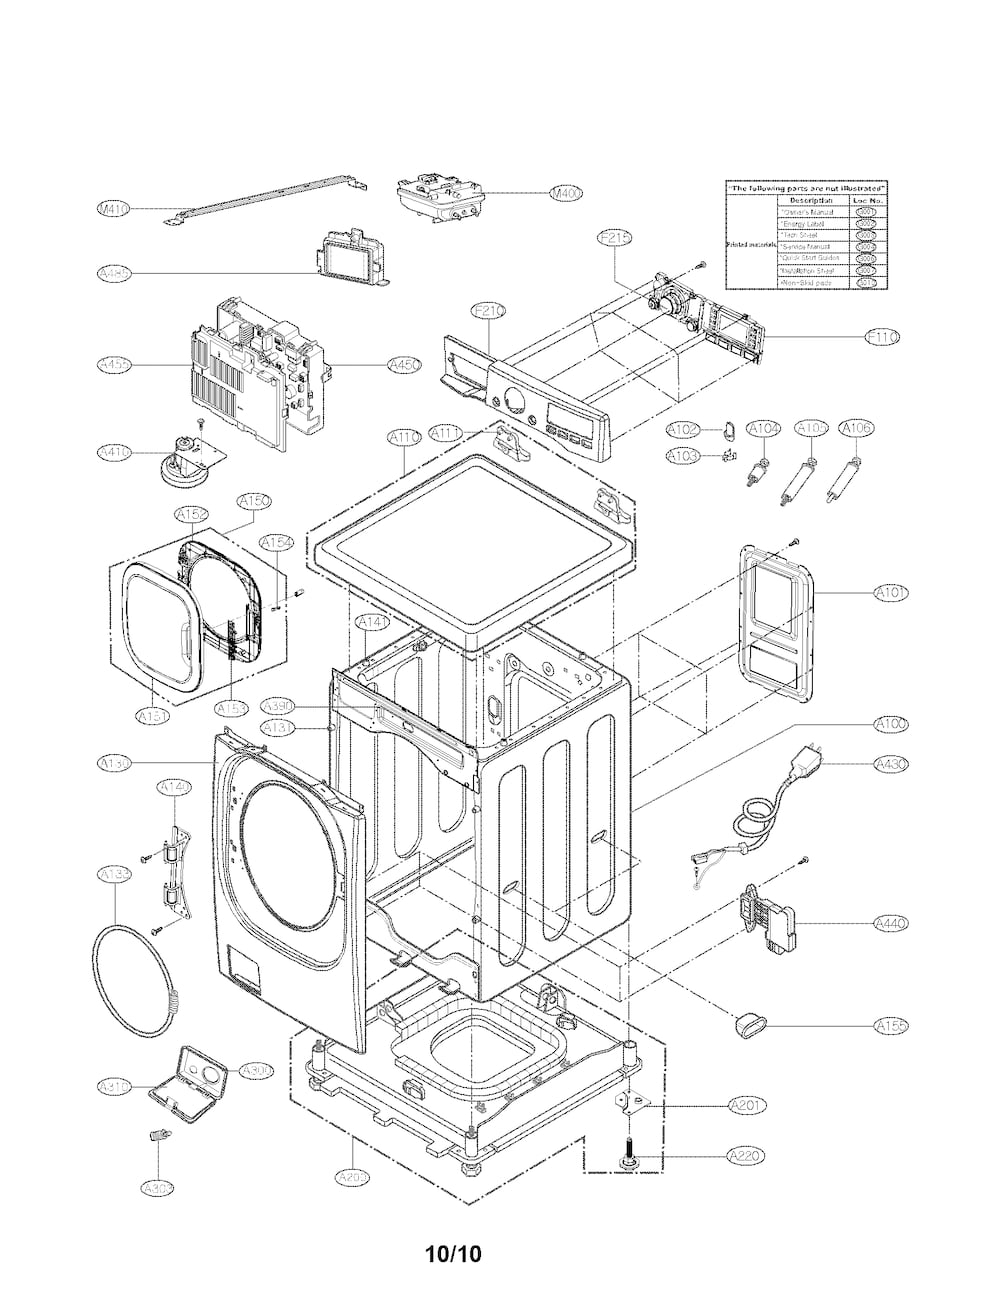 lg dle2512w wiring diagram lg front load washer parts diagram automotive parts lg washer wiring diagram